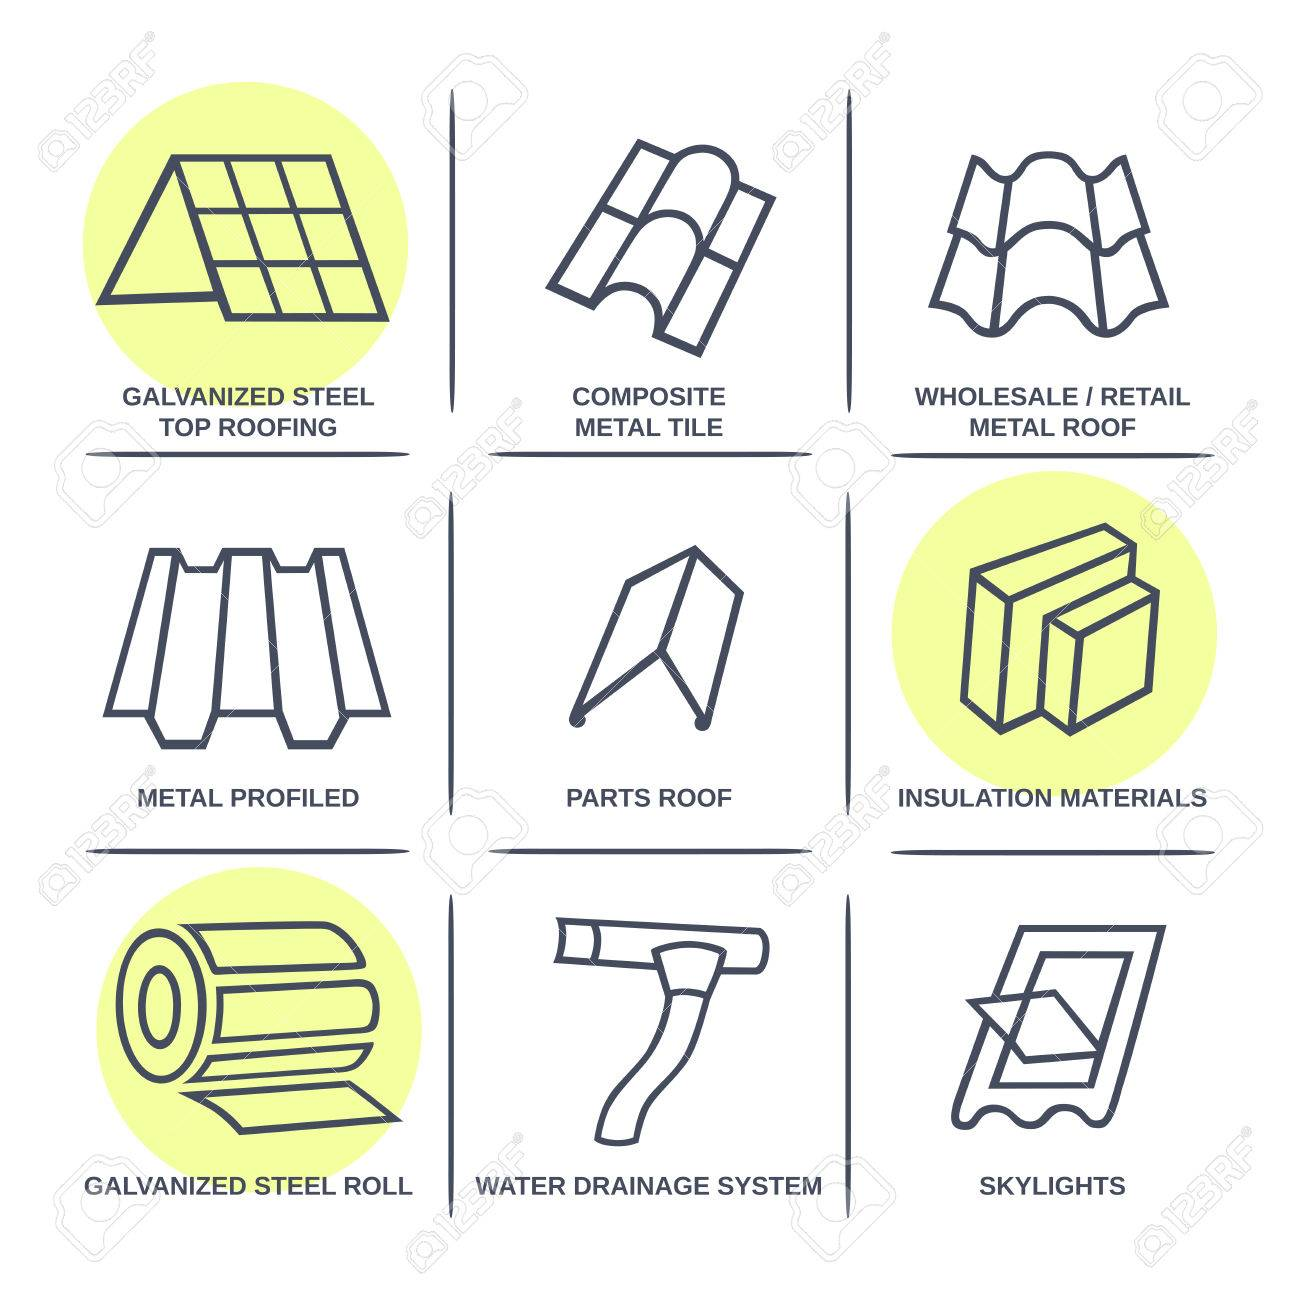 Sale buildings materials (roof, facade) site icons infographics set isolated on white background, vector illustration - 38732724